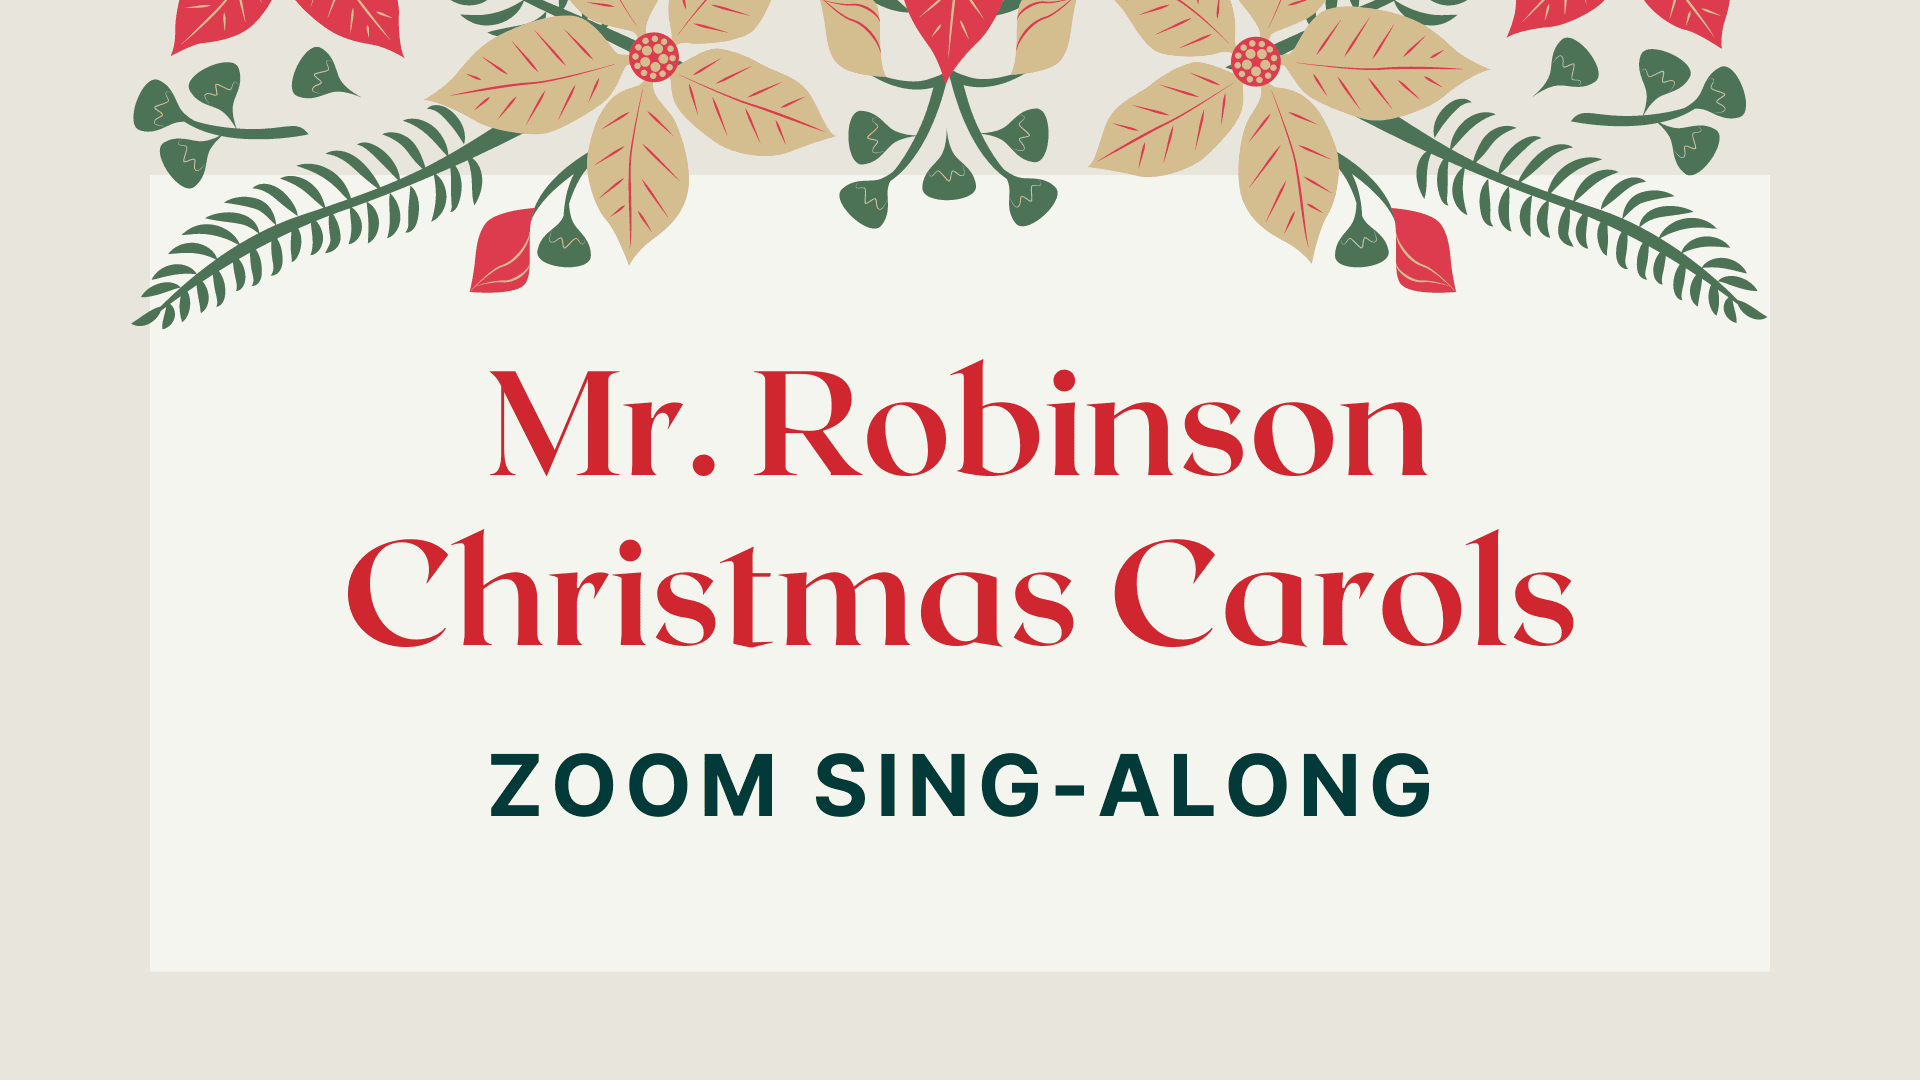 Mr. Robinson Christmas Carols Sing-Along Title page with decorative flowers and leaves on top